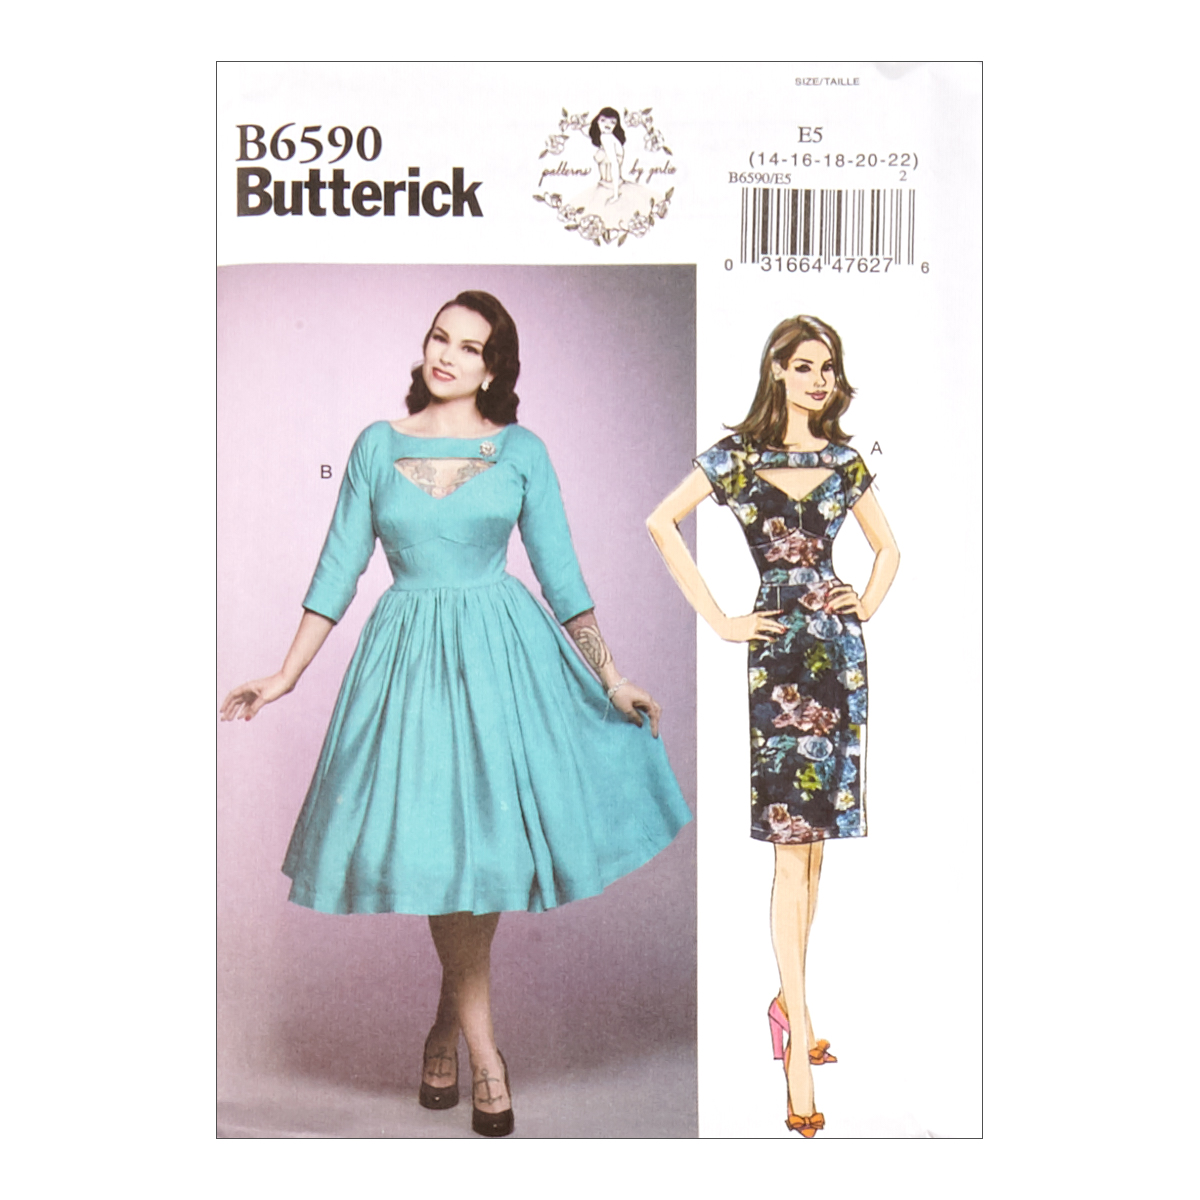 1950s Sewing Patterns | Dresses, Skirts, Tops, Mens Butterick B6590 Patterns by Gertie Misses Dress E5 Sizes 14-22 $11.97 AT vintagedancer.com